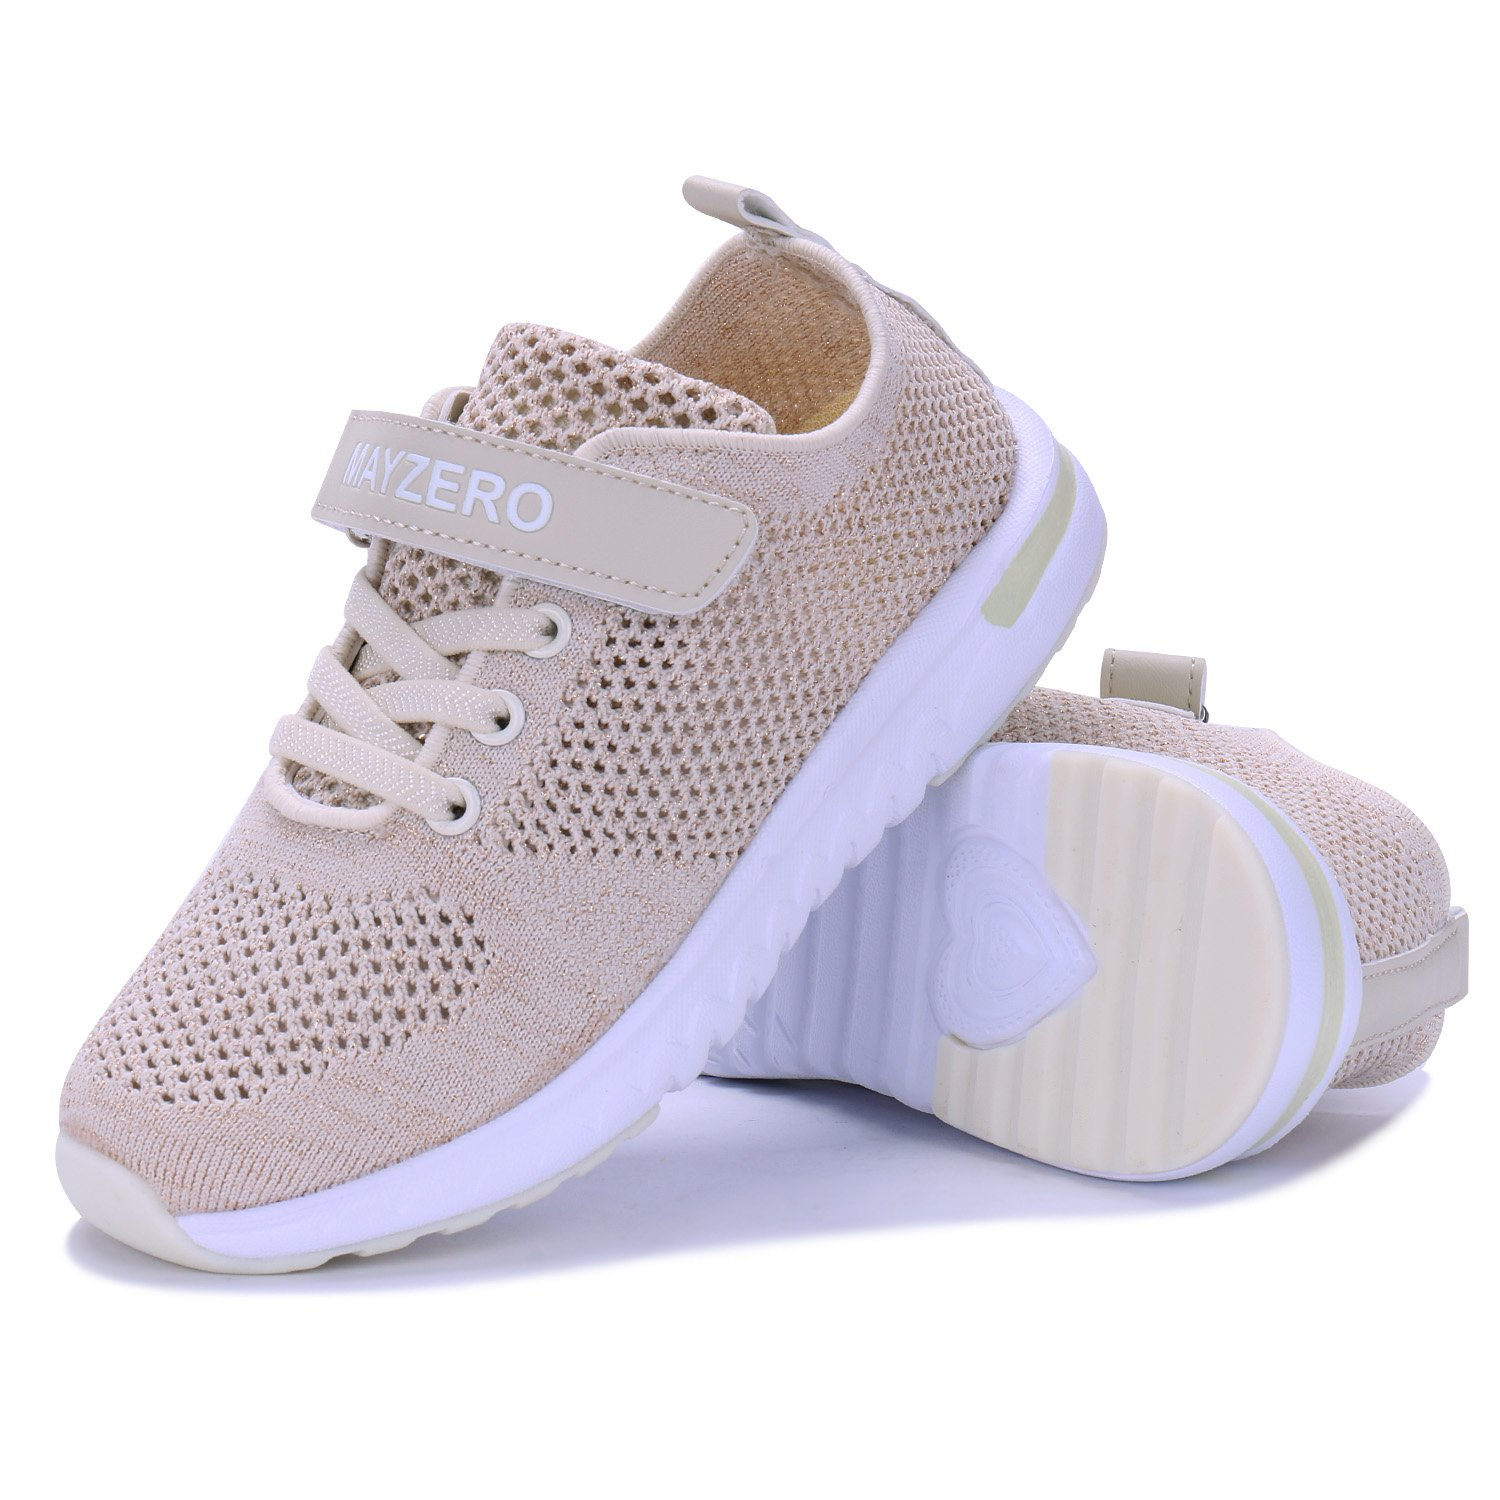 Kids Running Tennis Shoes Lightweight Casual Walking Sneakers for Boys and Girls Little Kid//Big Kid